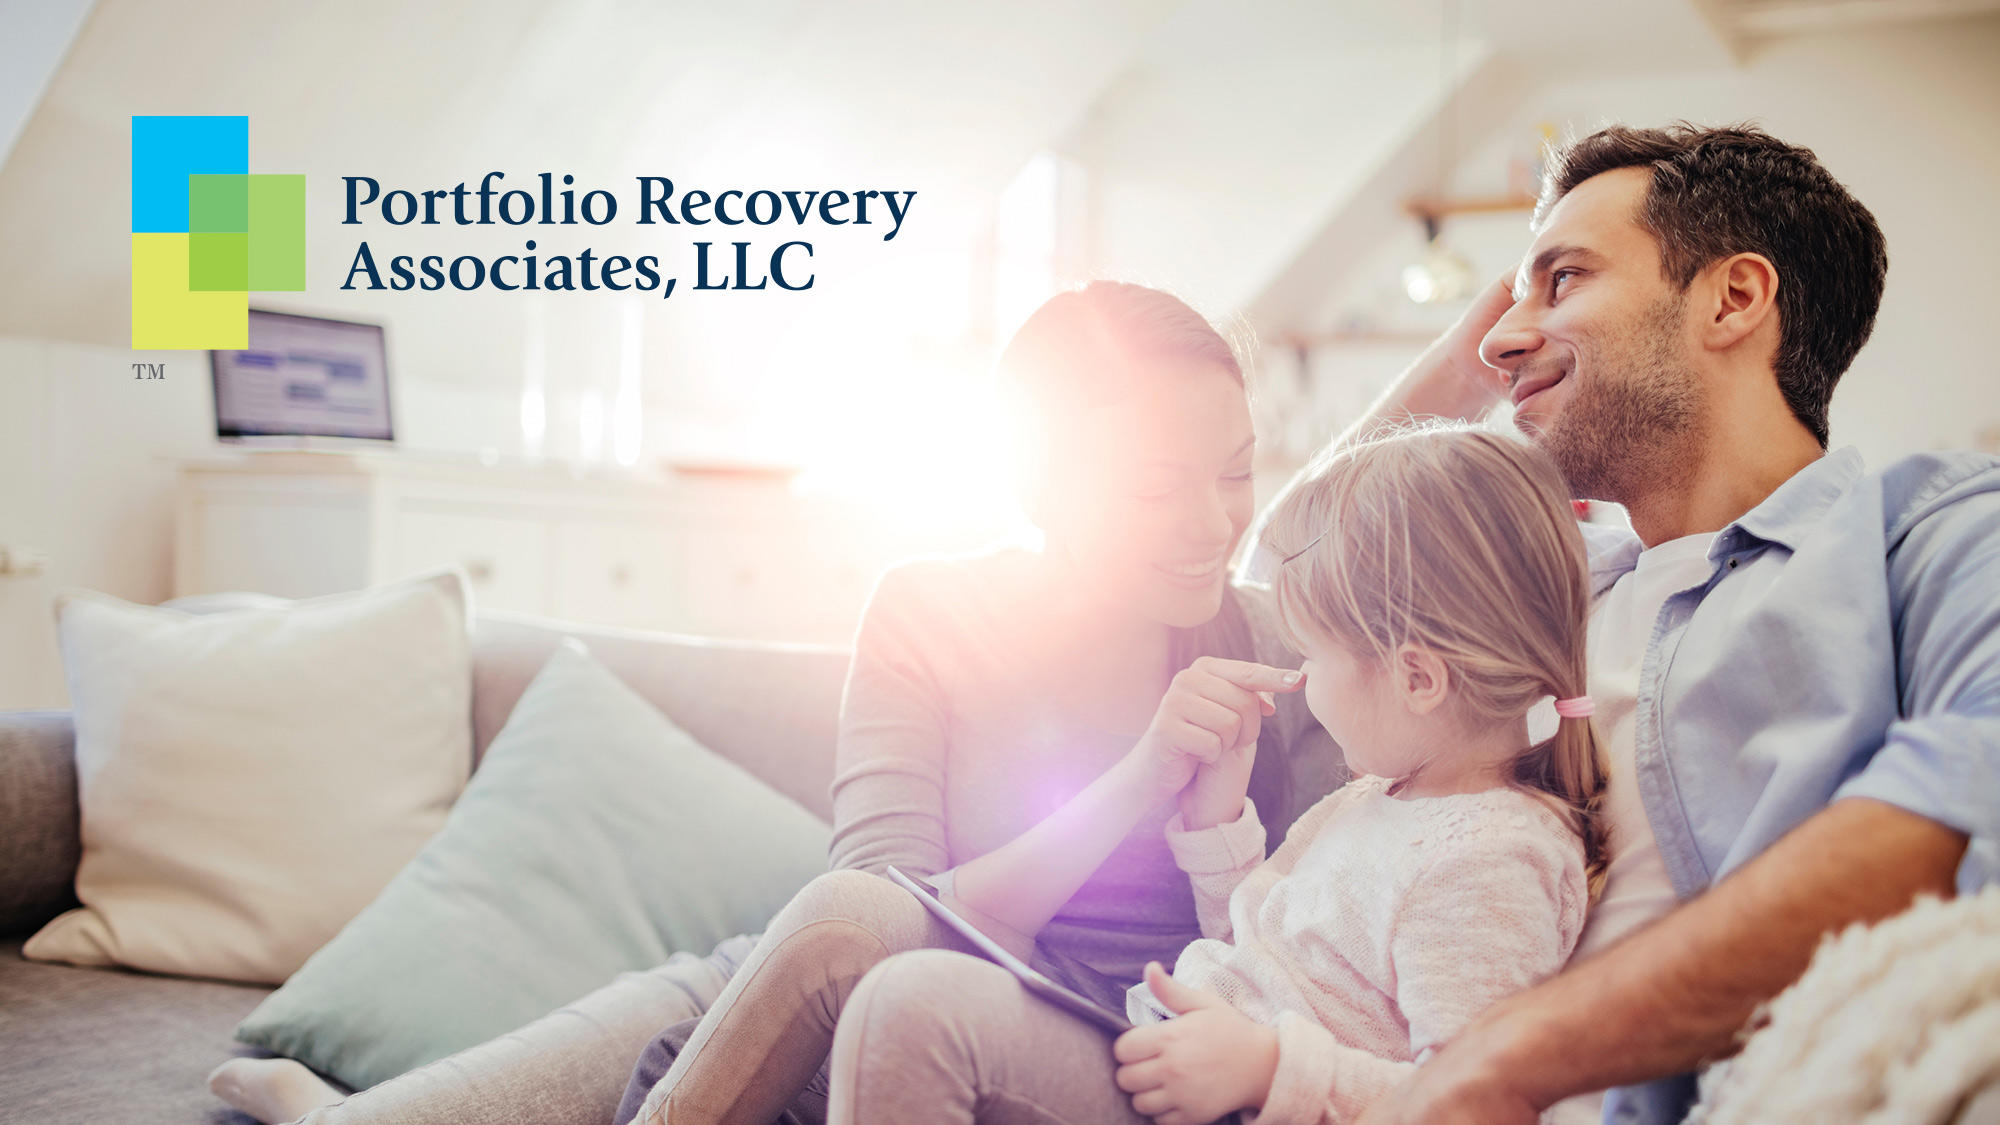 Portfolio Recovery Associates, Llc  Chamberofcommercecom. How Does Lasik Eye Surgery Work. Carrier Air Conditioner Unit. Mohela Student Loan Transfer. Aurora Edmonds Furnace Cleaning. How To Become An Mechanical Engineer. Online House Insurance Quote. Window Door Replacement Warehouse Pallet Rack. Online English Courses Accredited